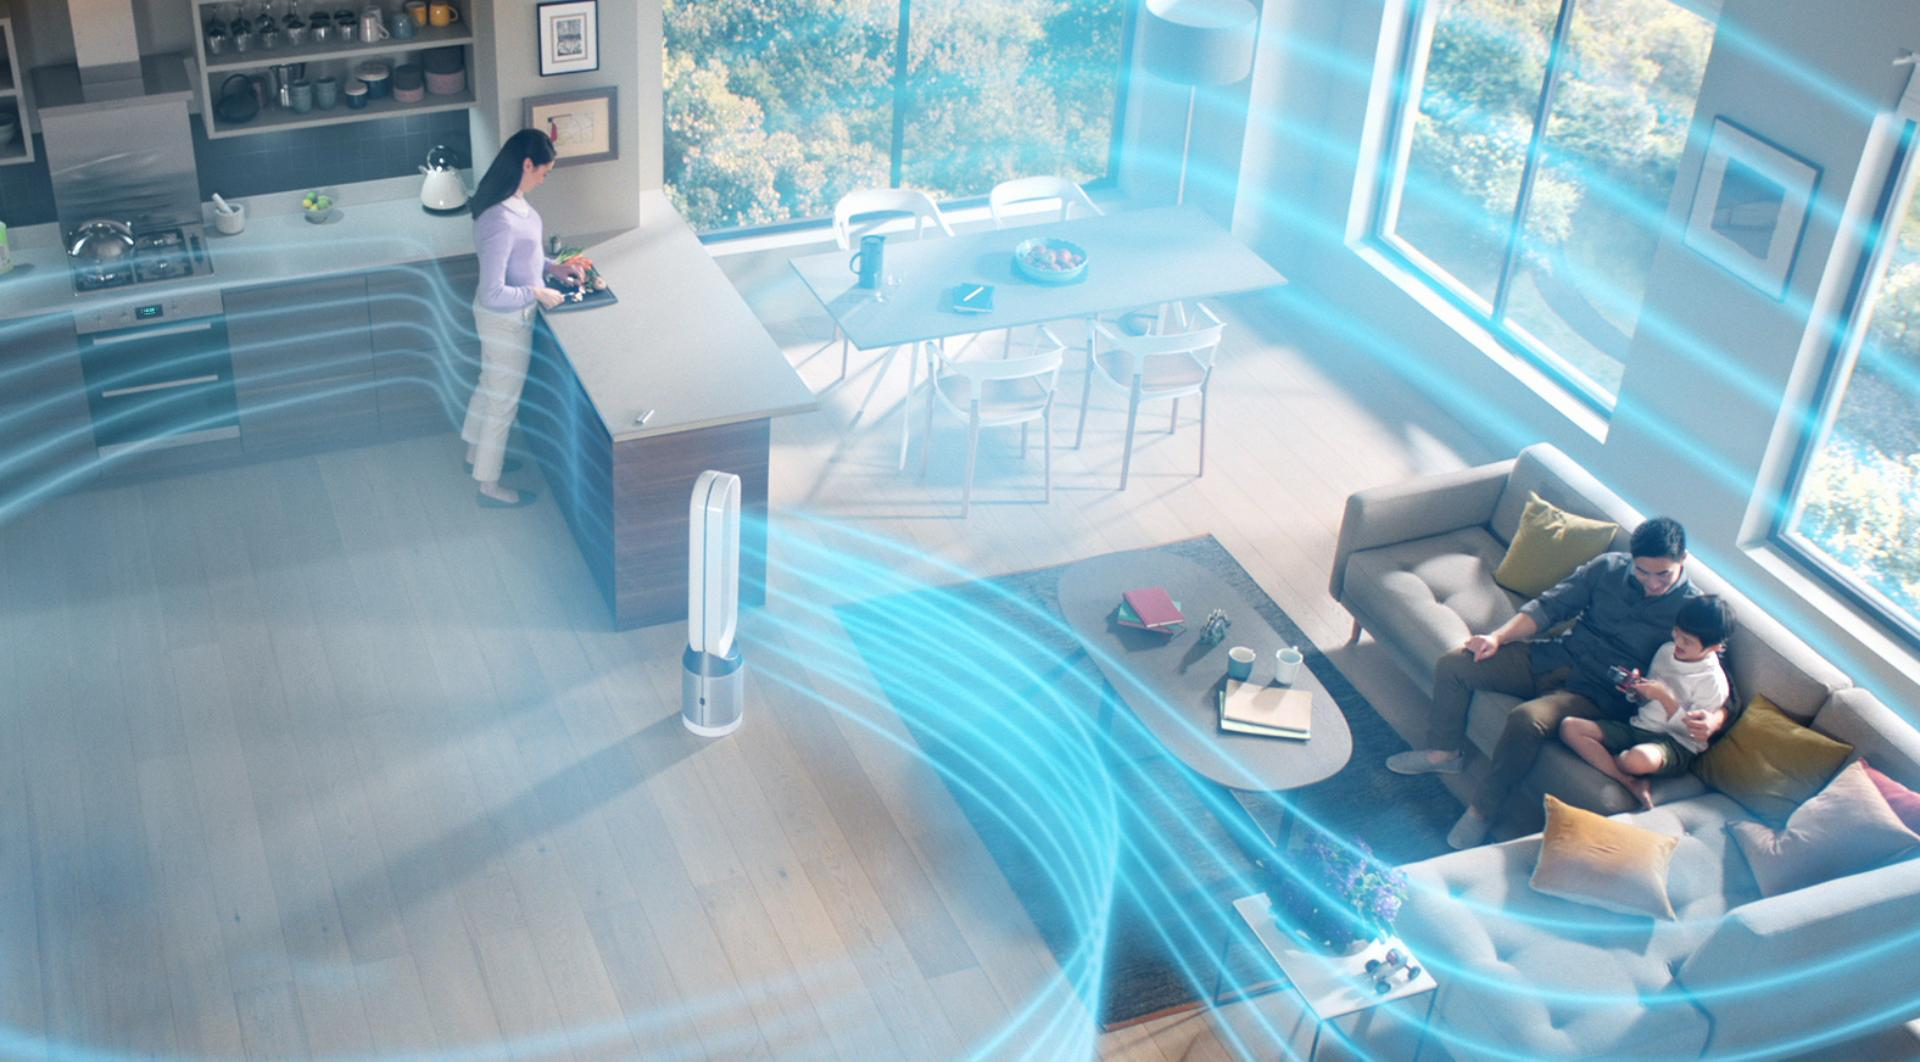 Video demonstration of airflow around the home from a Dyson Pure Cool™ purifying fan